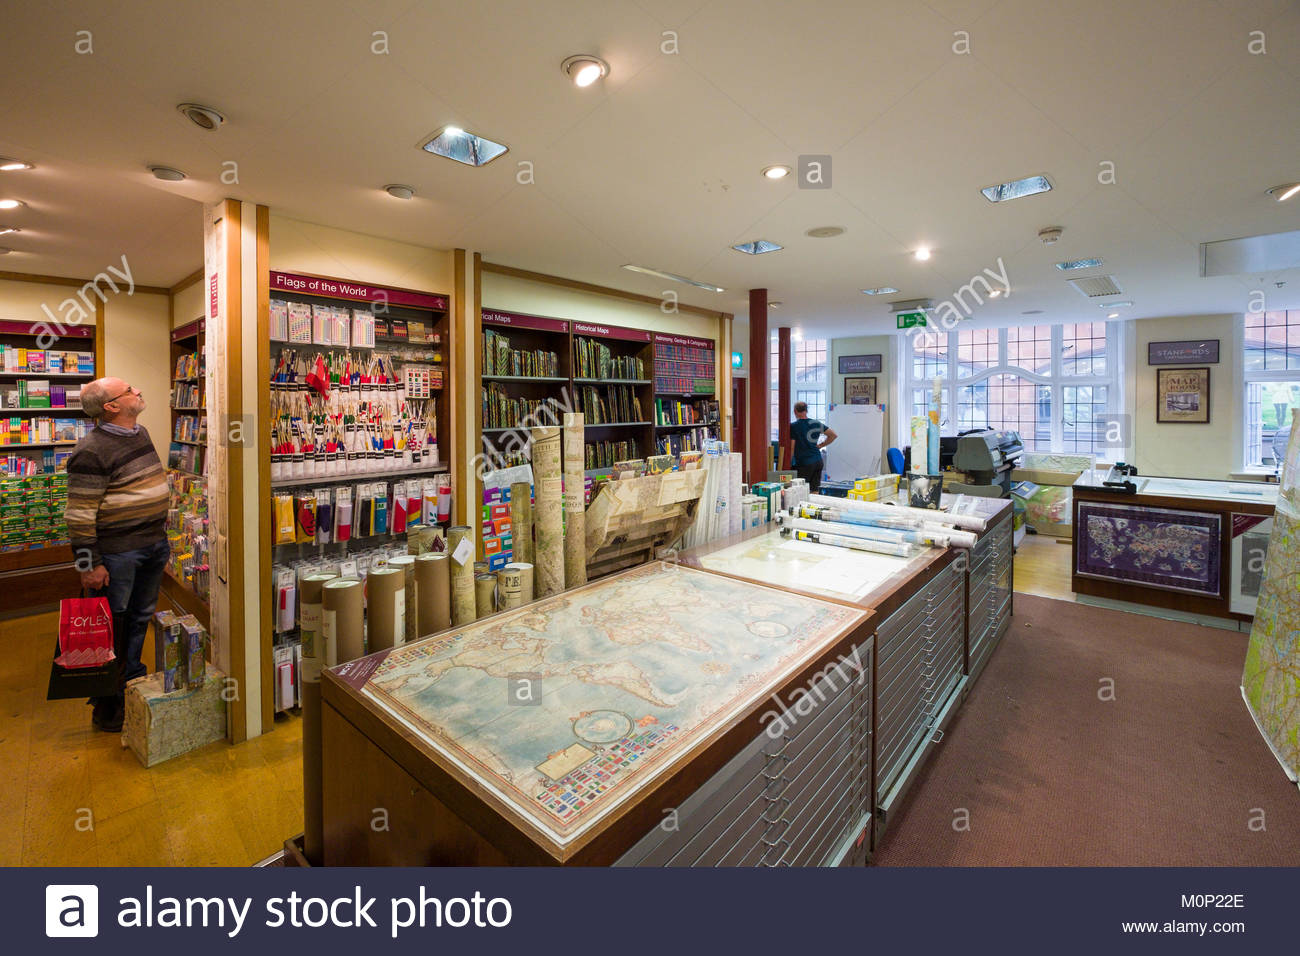 Rolled and flat maps for sale inside stanfords the worlds largest rolled and flat maps for sale inside stanfords the worlds largest map and travel bookshop covent garden city of westminster london england un gumiabroncs Gallery